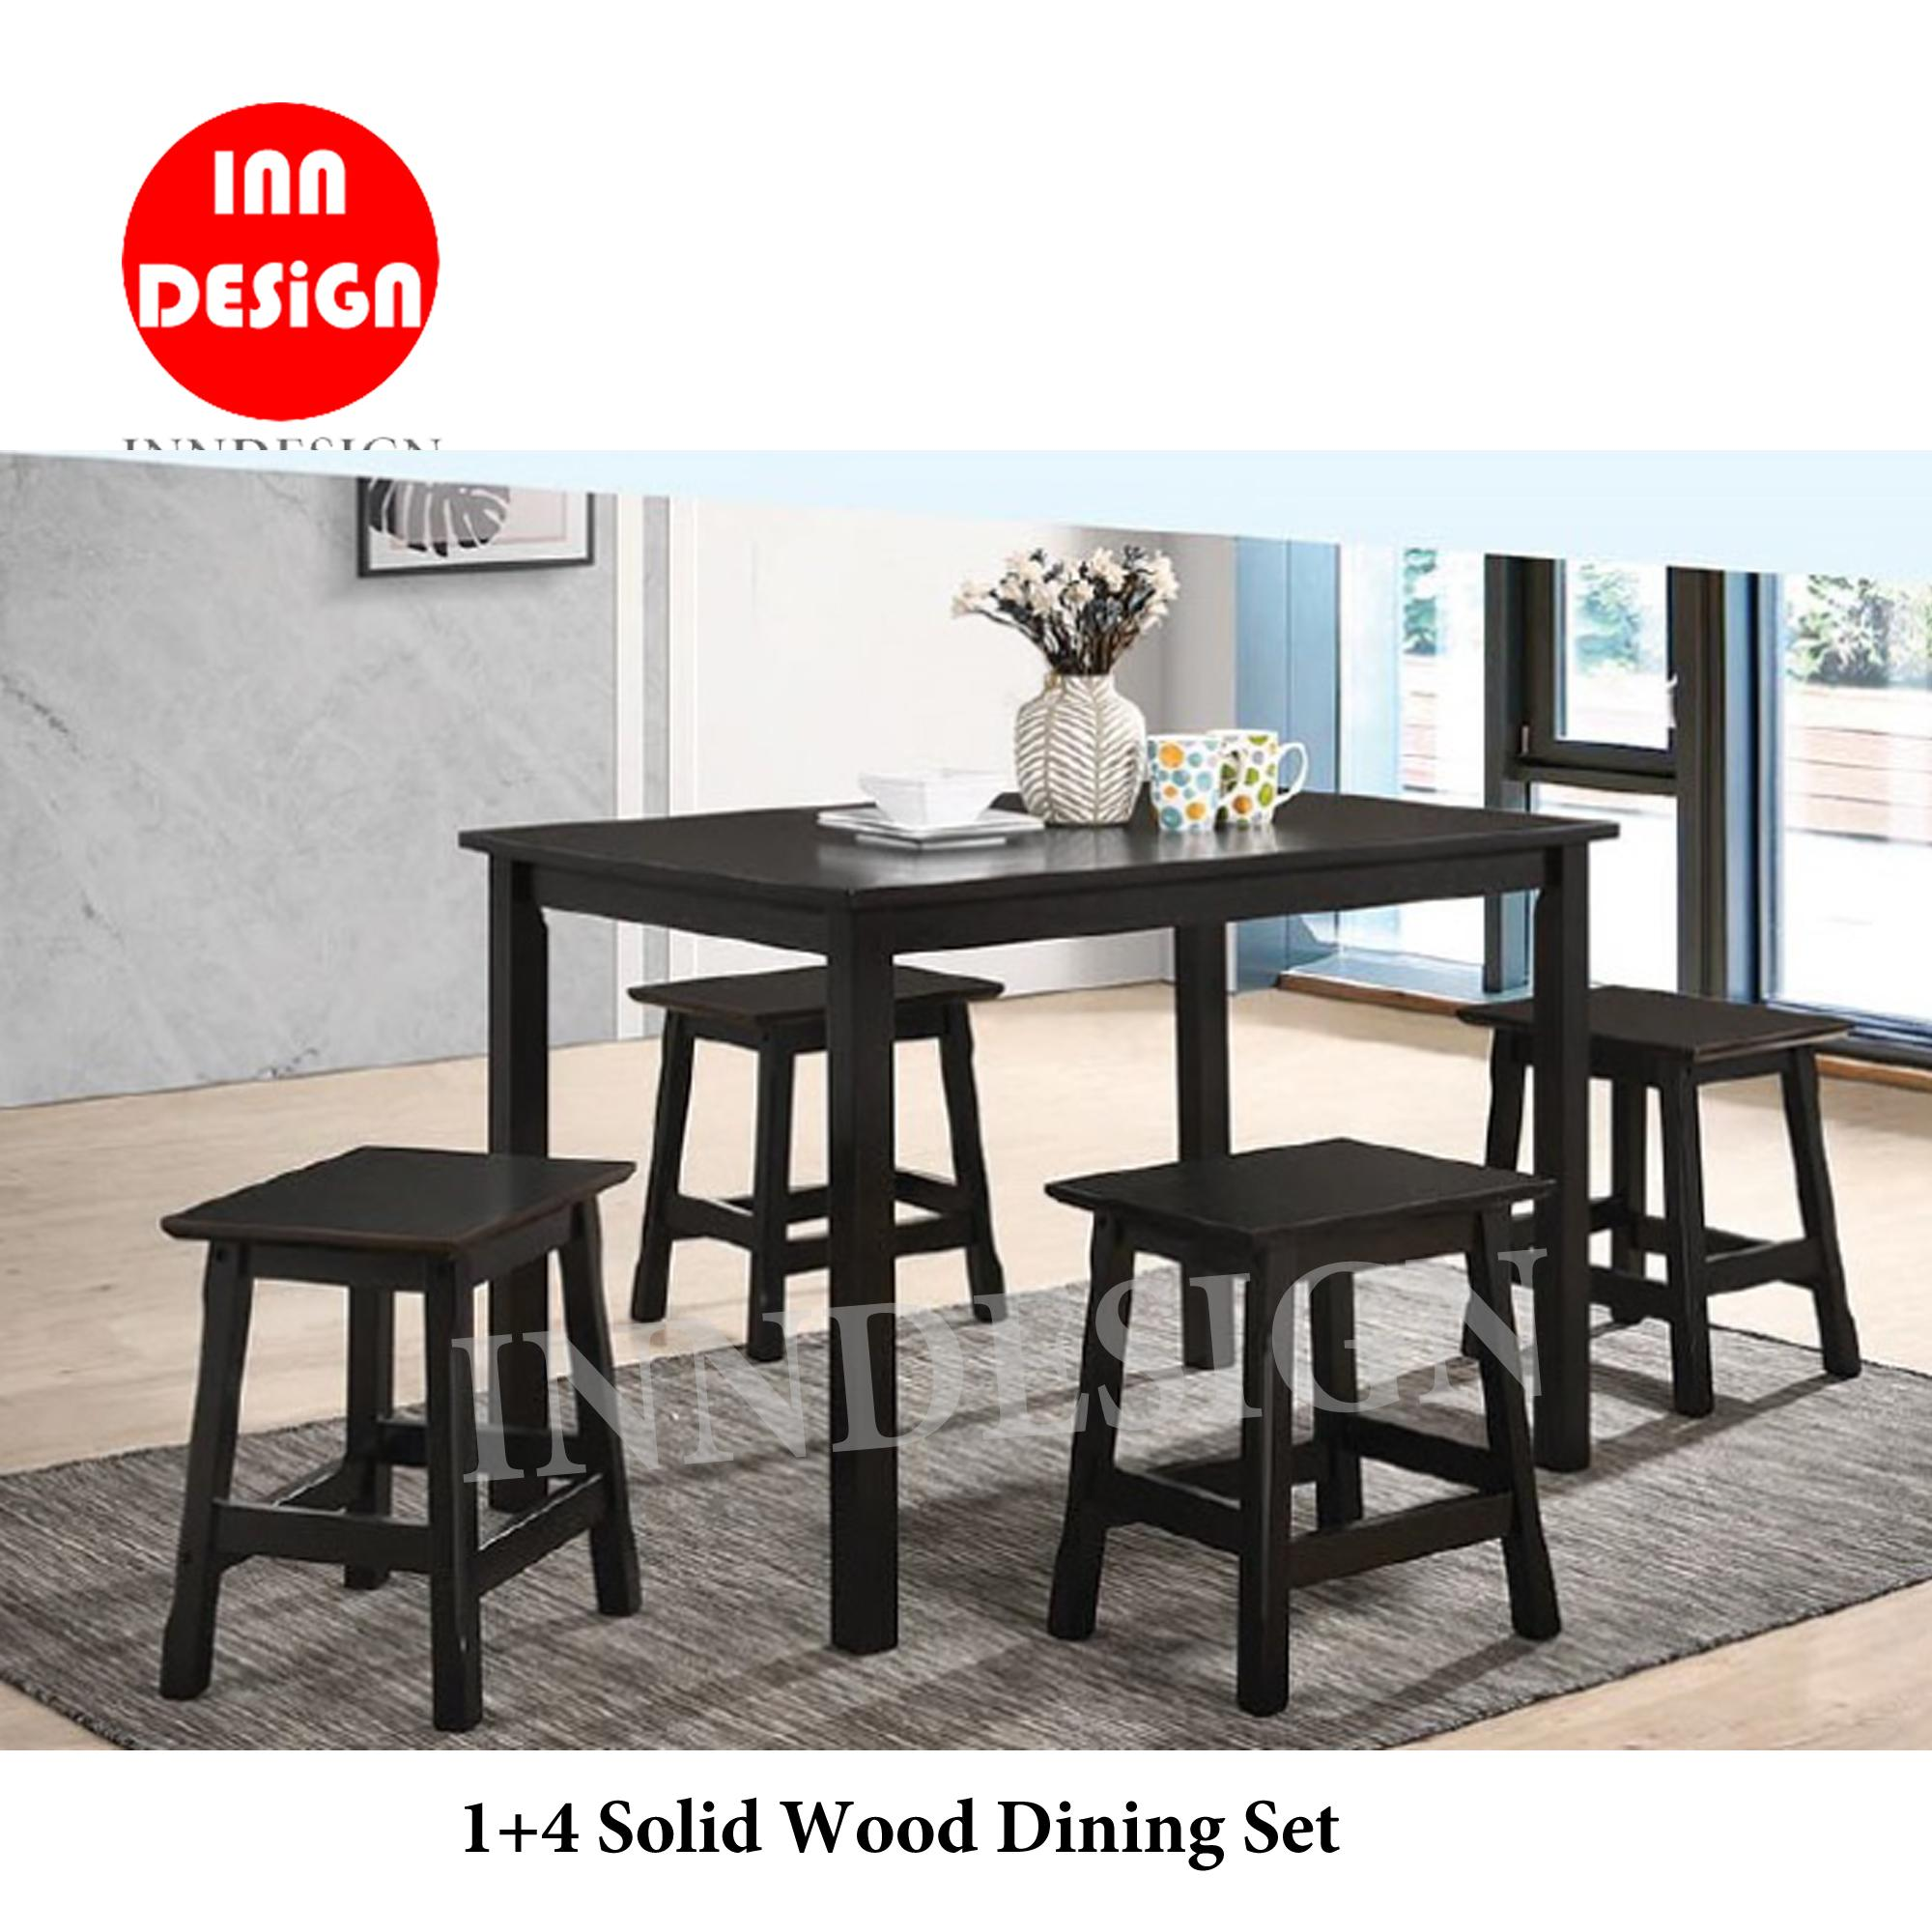 1+4 Solid Wood Structure Dining Set